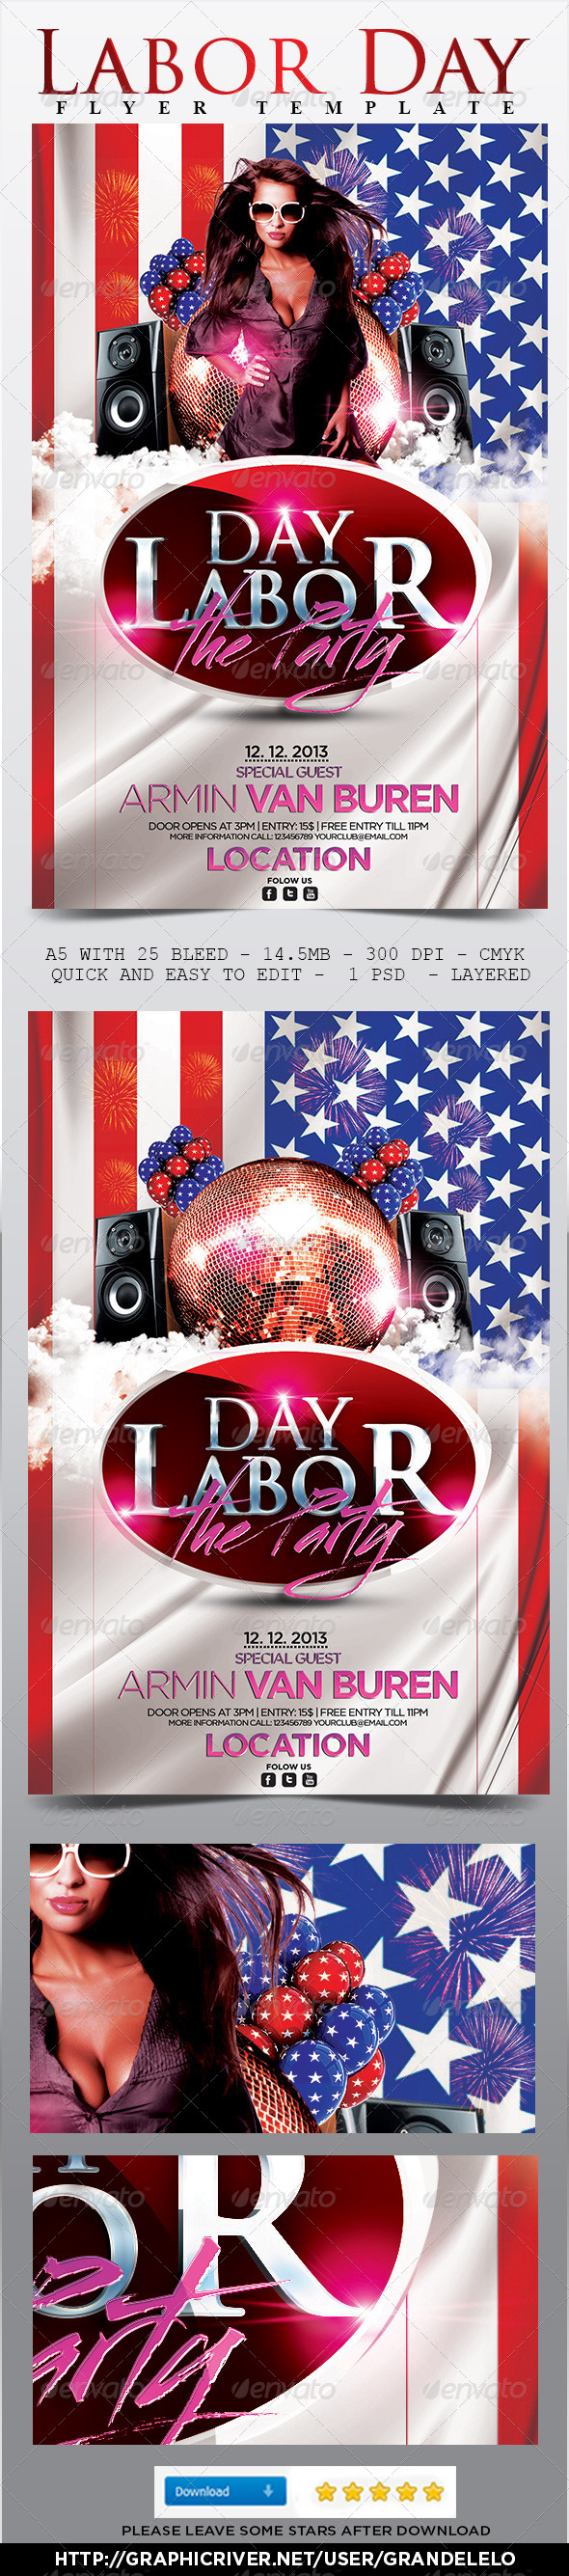 GraphicRiver Labor Day Flyer Template 5387832